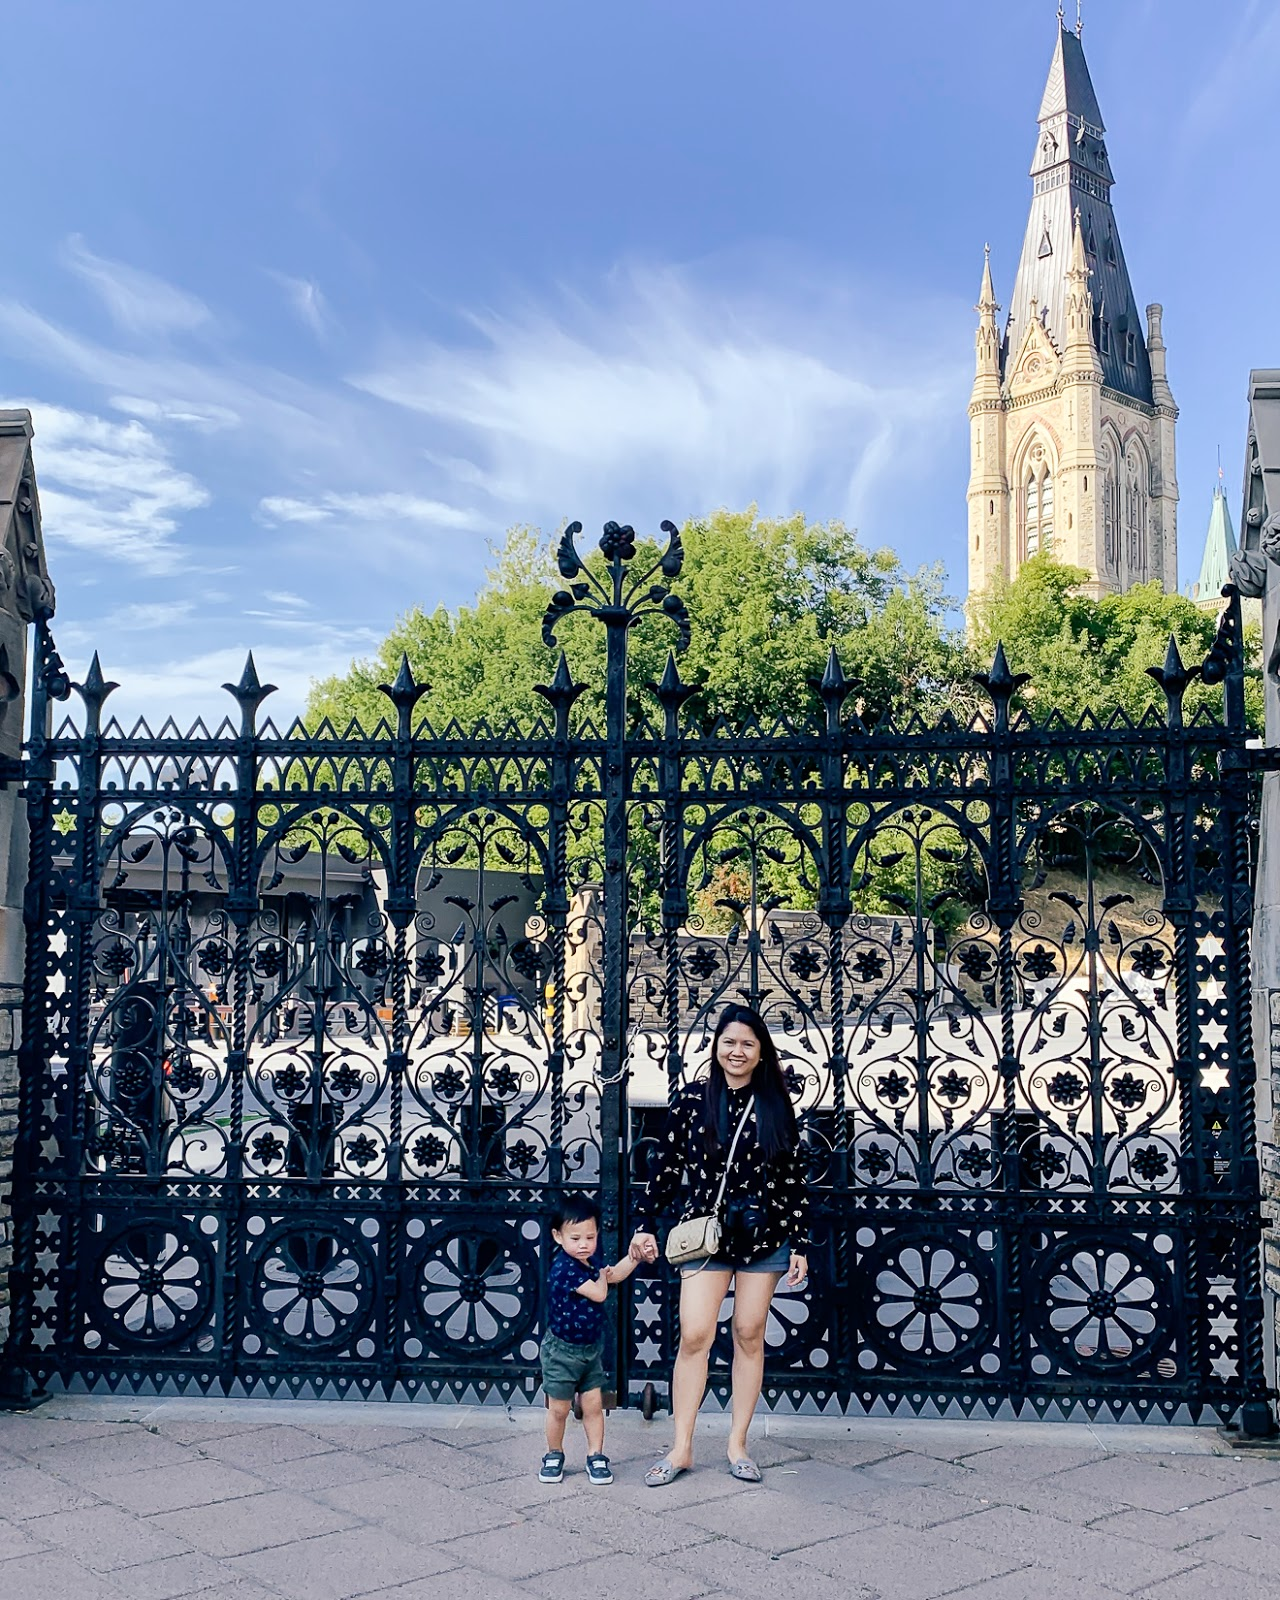 Canada's Parliament Hill: Things To Do in Ottawa, Ontario, Canada